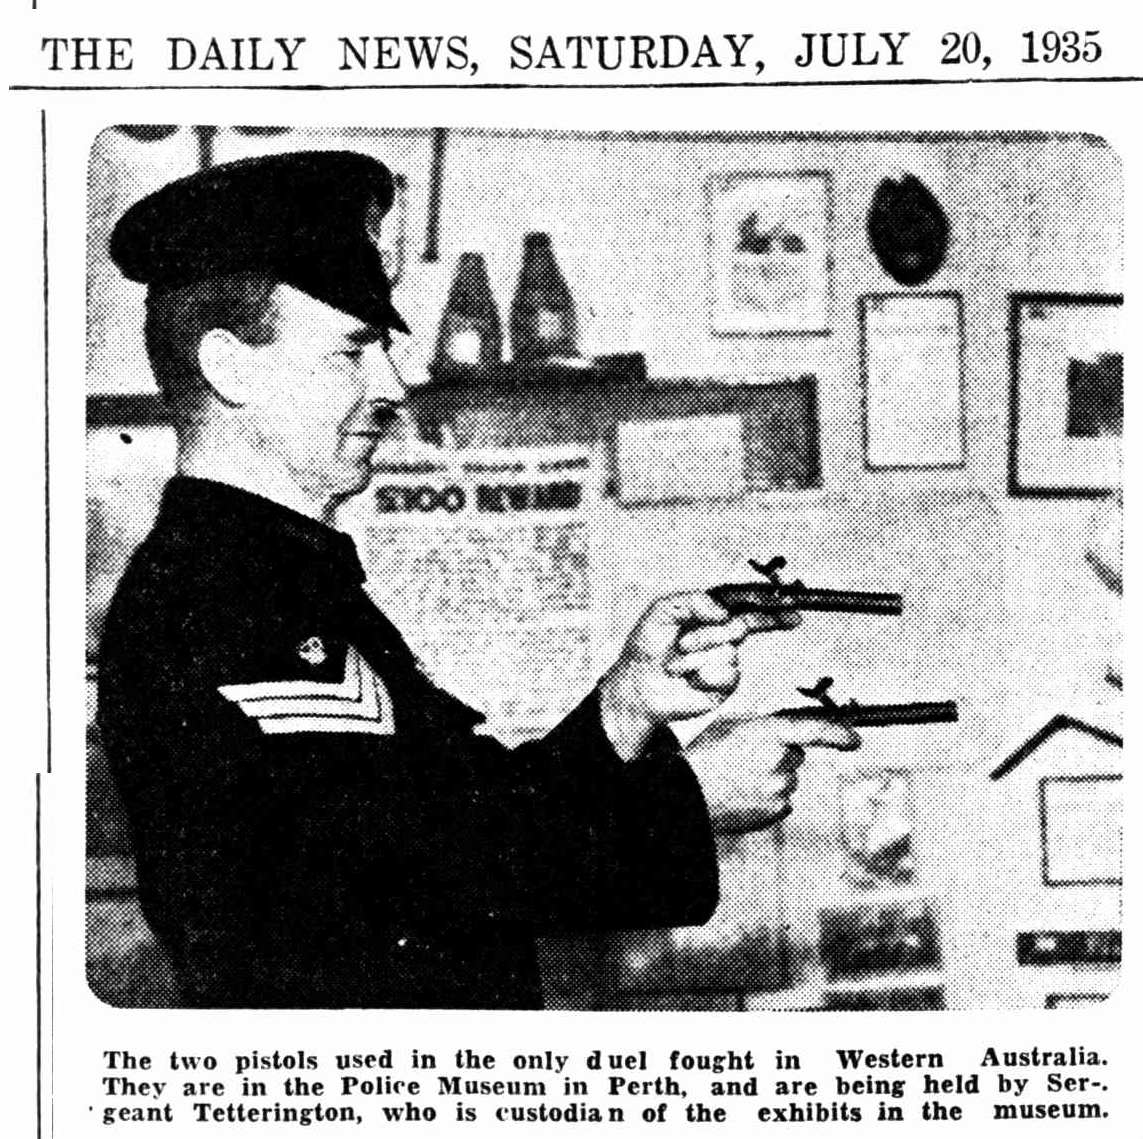 The West Australian, 5 January 1933 (Image of the policeman holding the pistols).